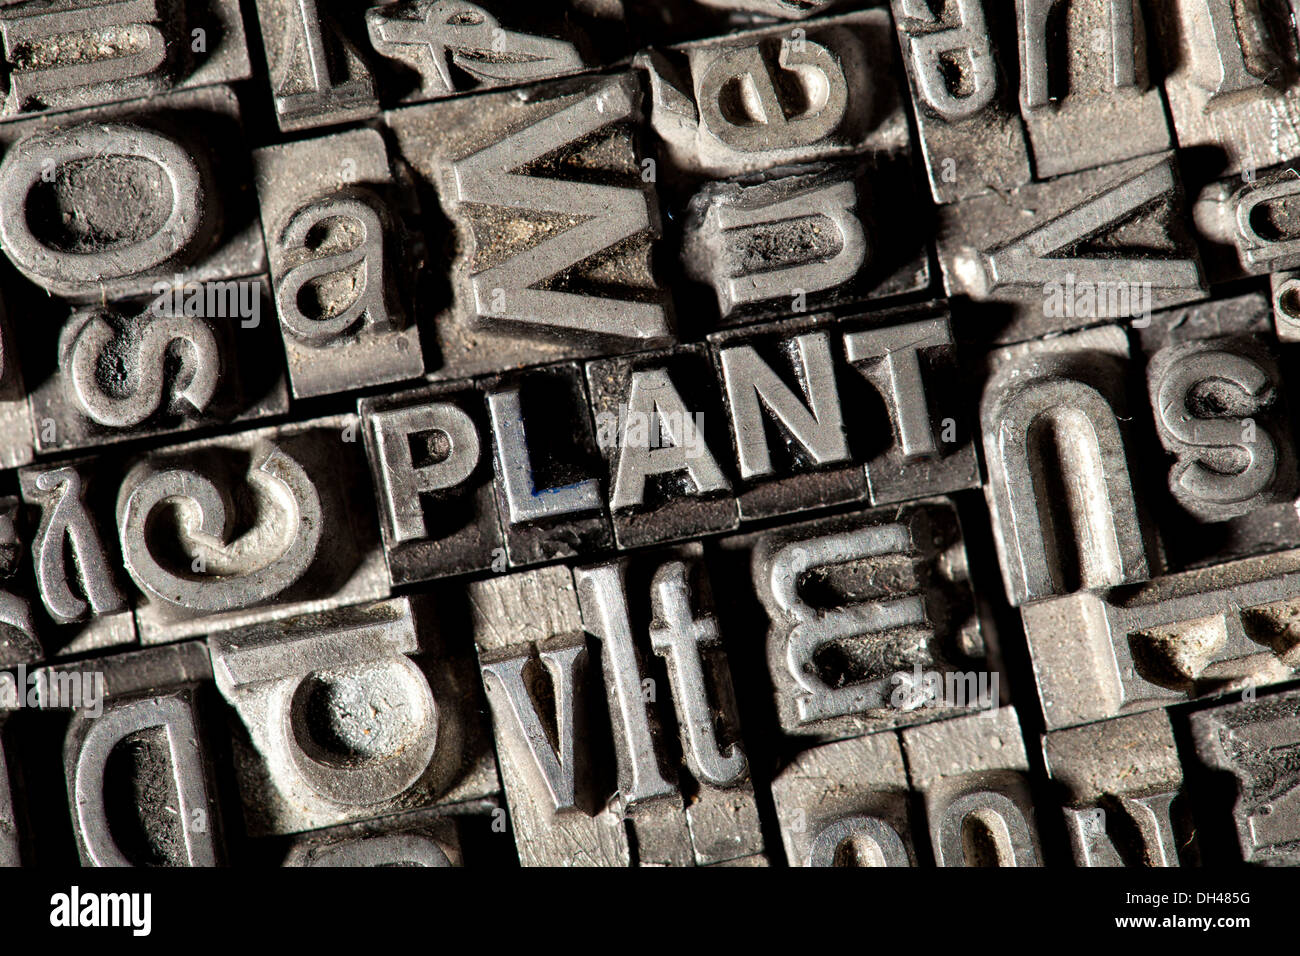 "Old lead letters forming the word ""PLANT"" - Stock Image"